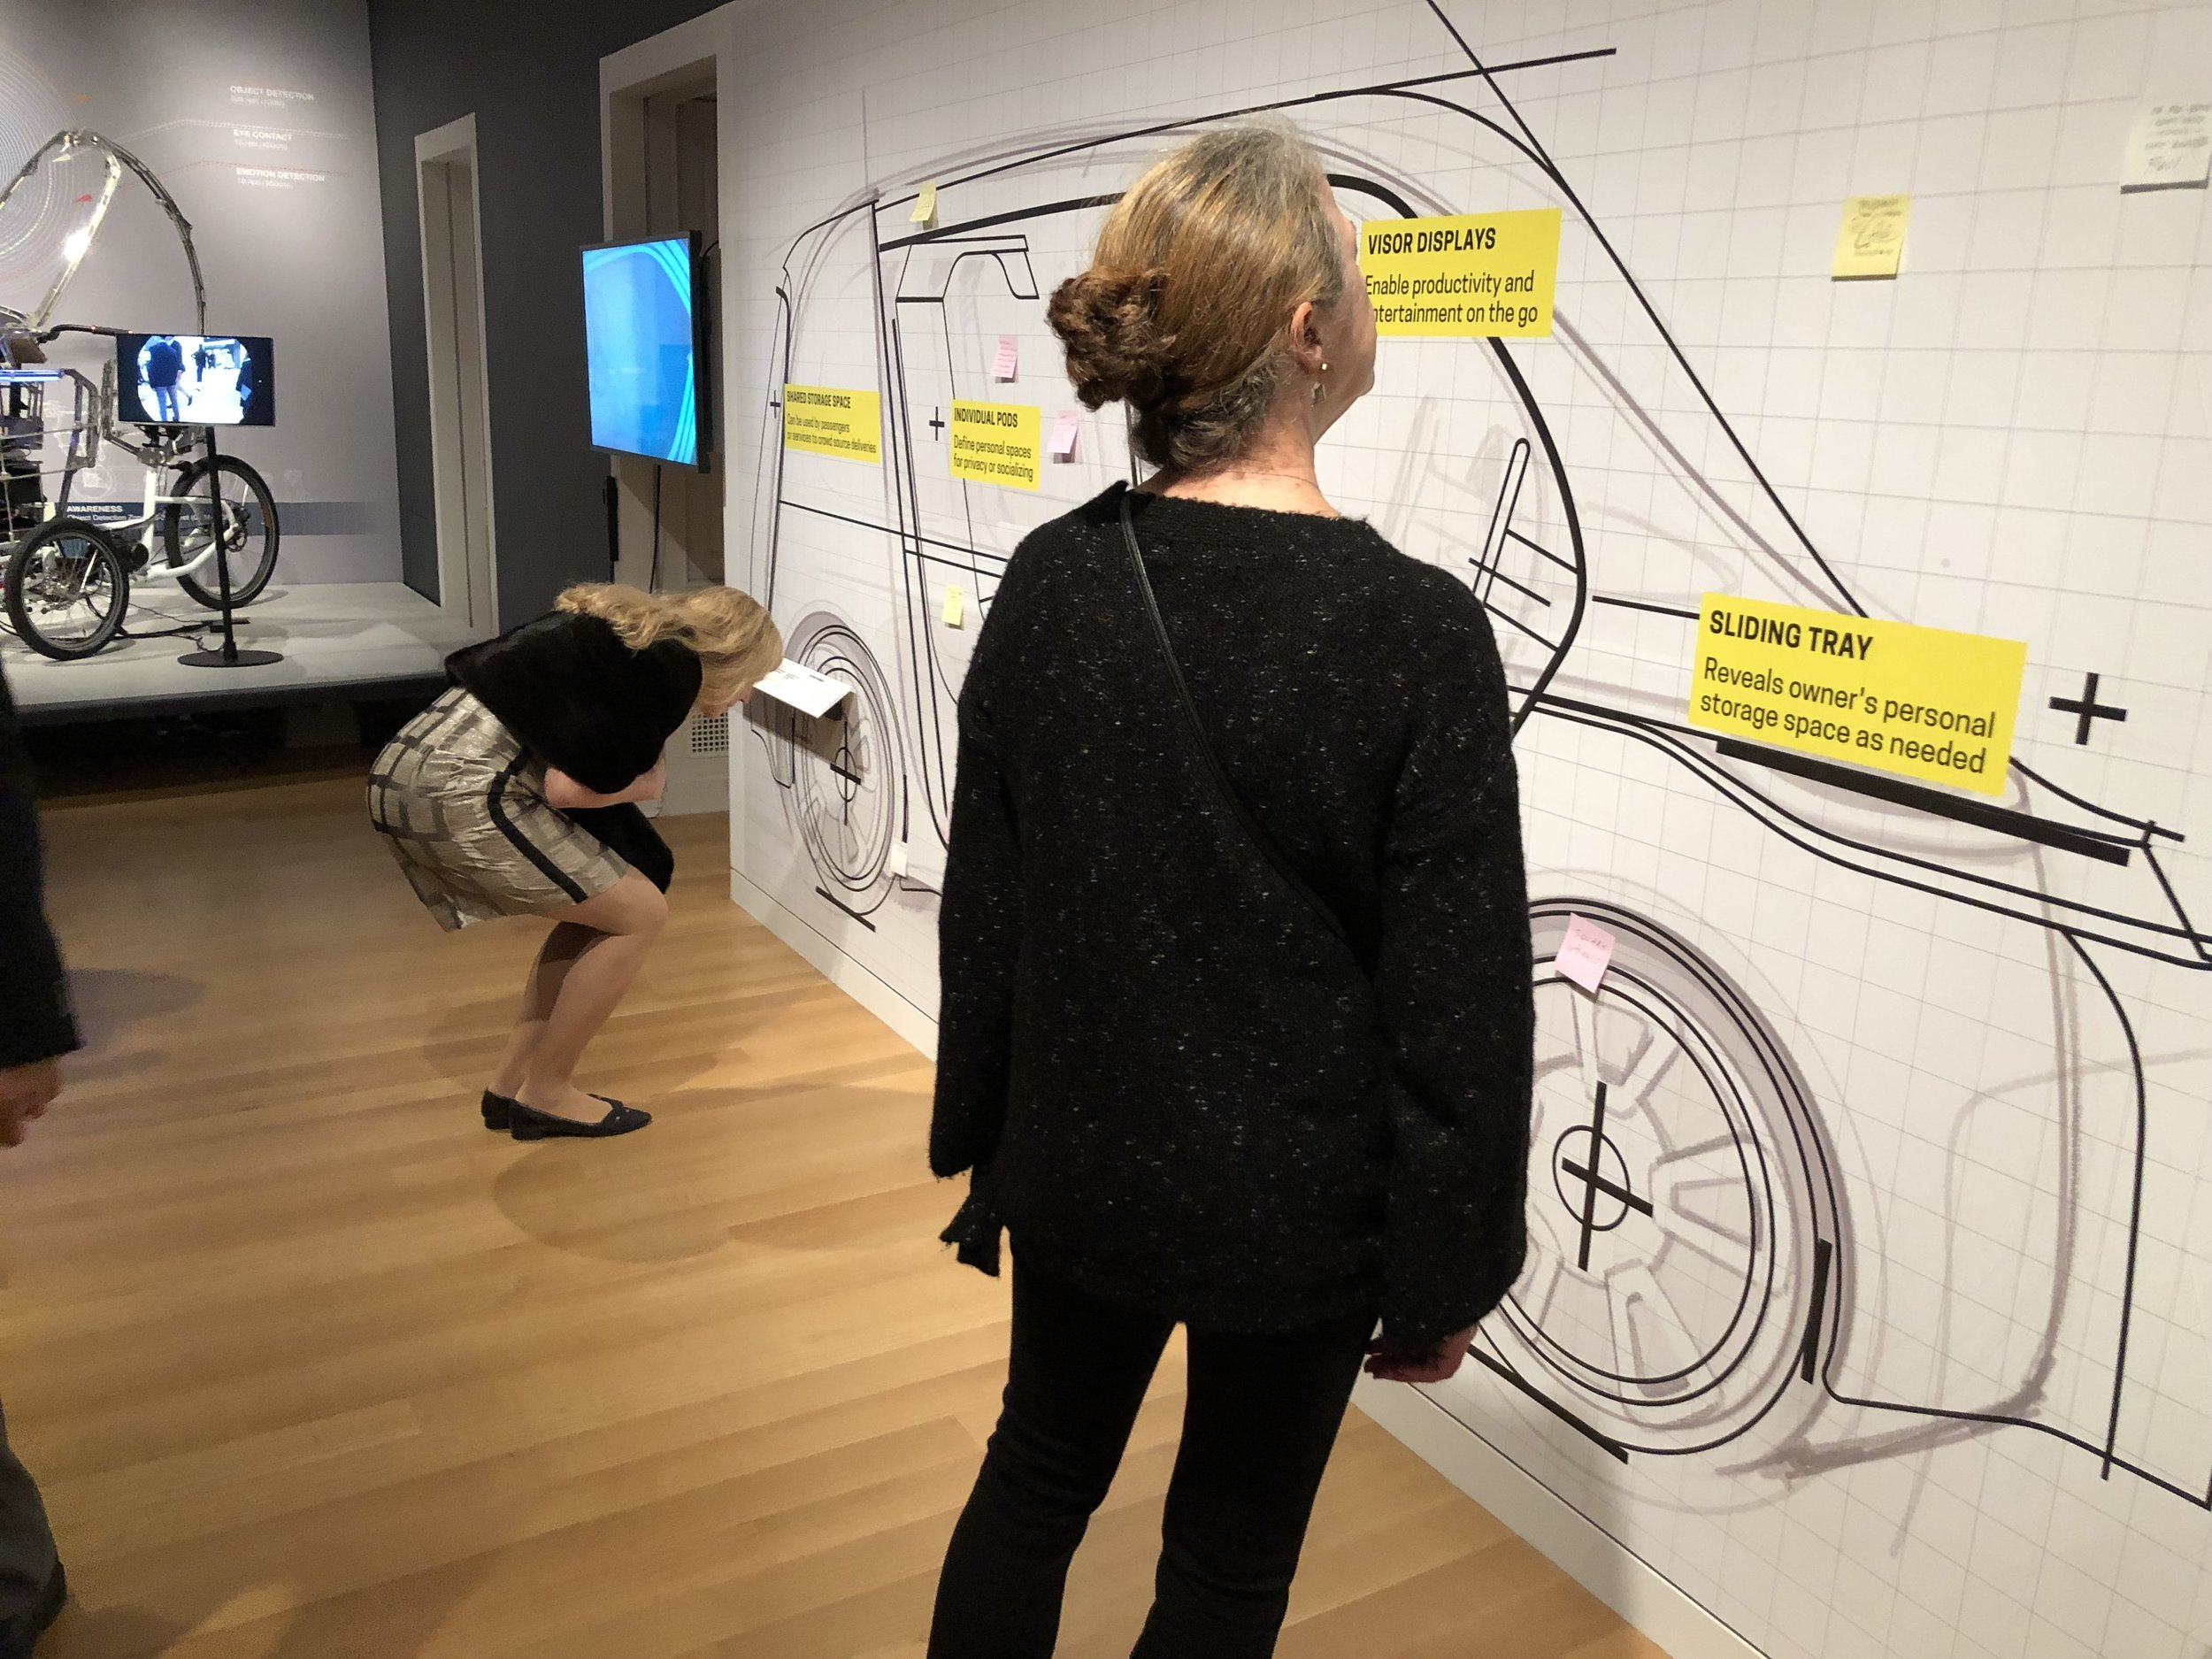 Visitors are prompted to capture their own hopes, needs and desires for future mobility on post-it notes and to place them upon a life-sized sketch of a vehicle designed to support shared mobility.